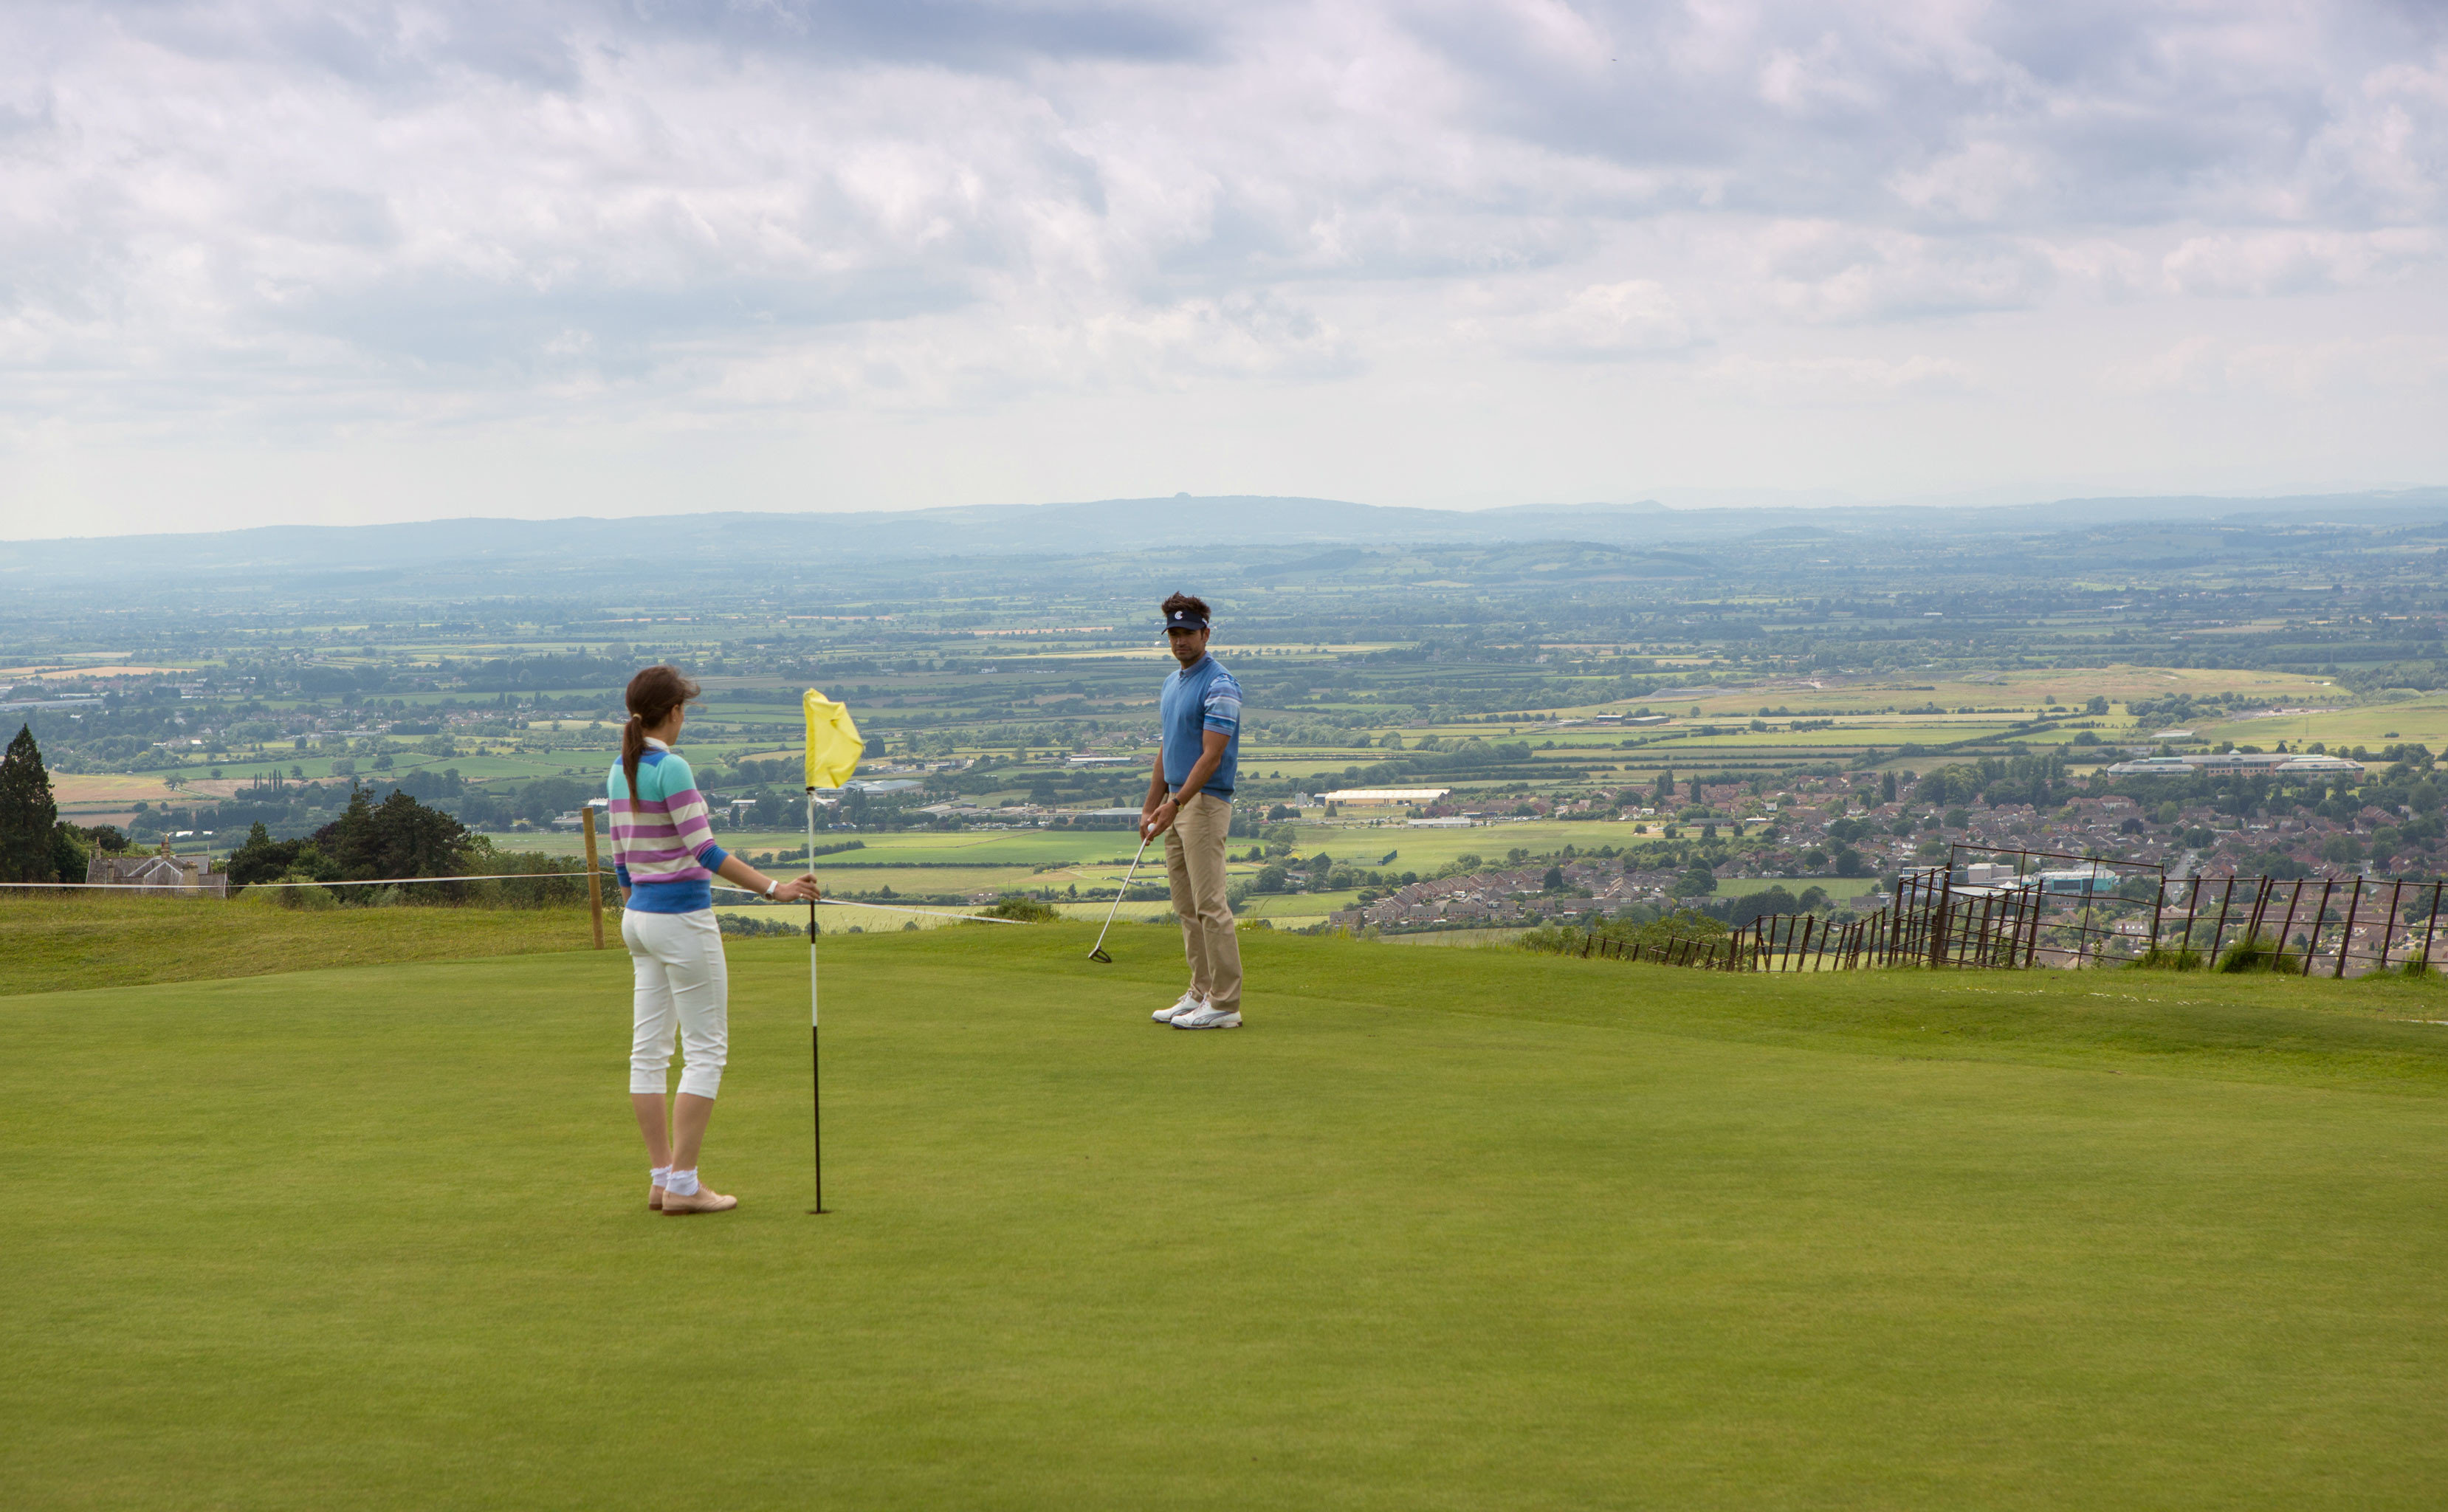 Country Entertainment Golf Grounds Luxury Resort Scenic views Sport sky grass athletic game sports structure field ball game sport venue outdoor recreation recreation golf course individual sports golf club day lush